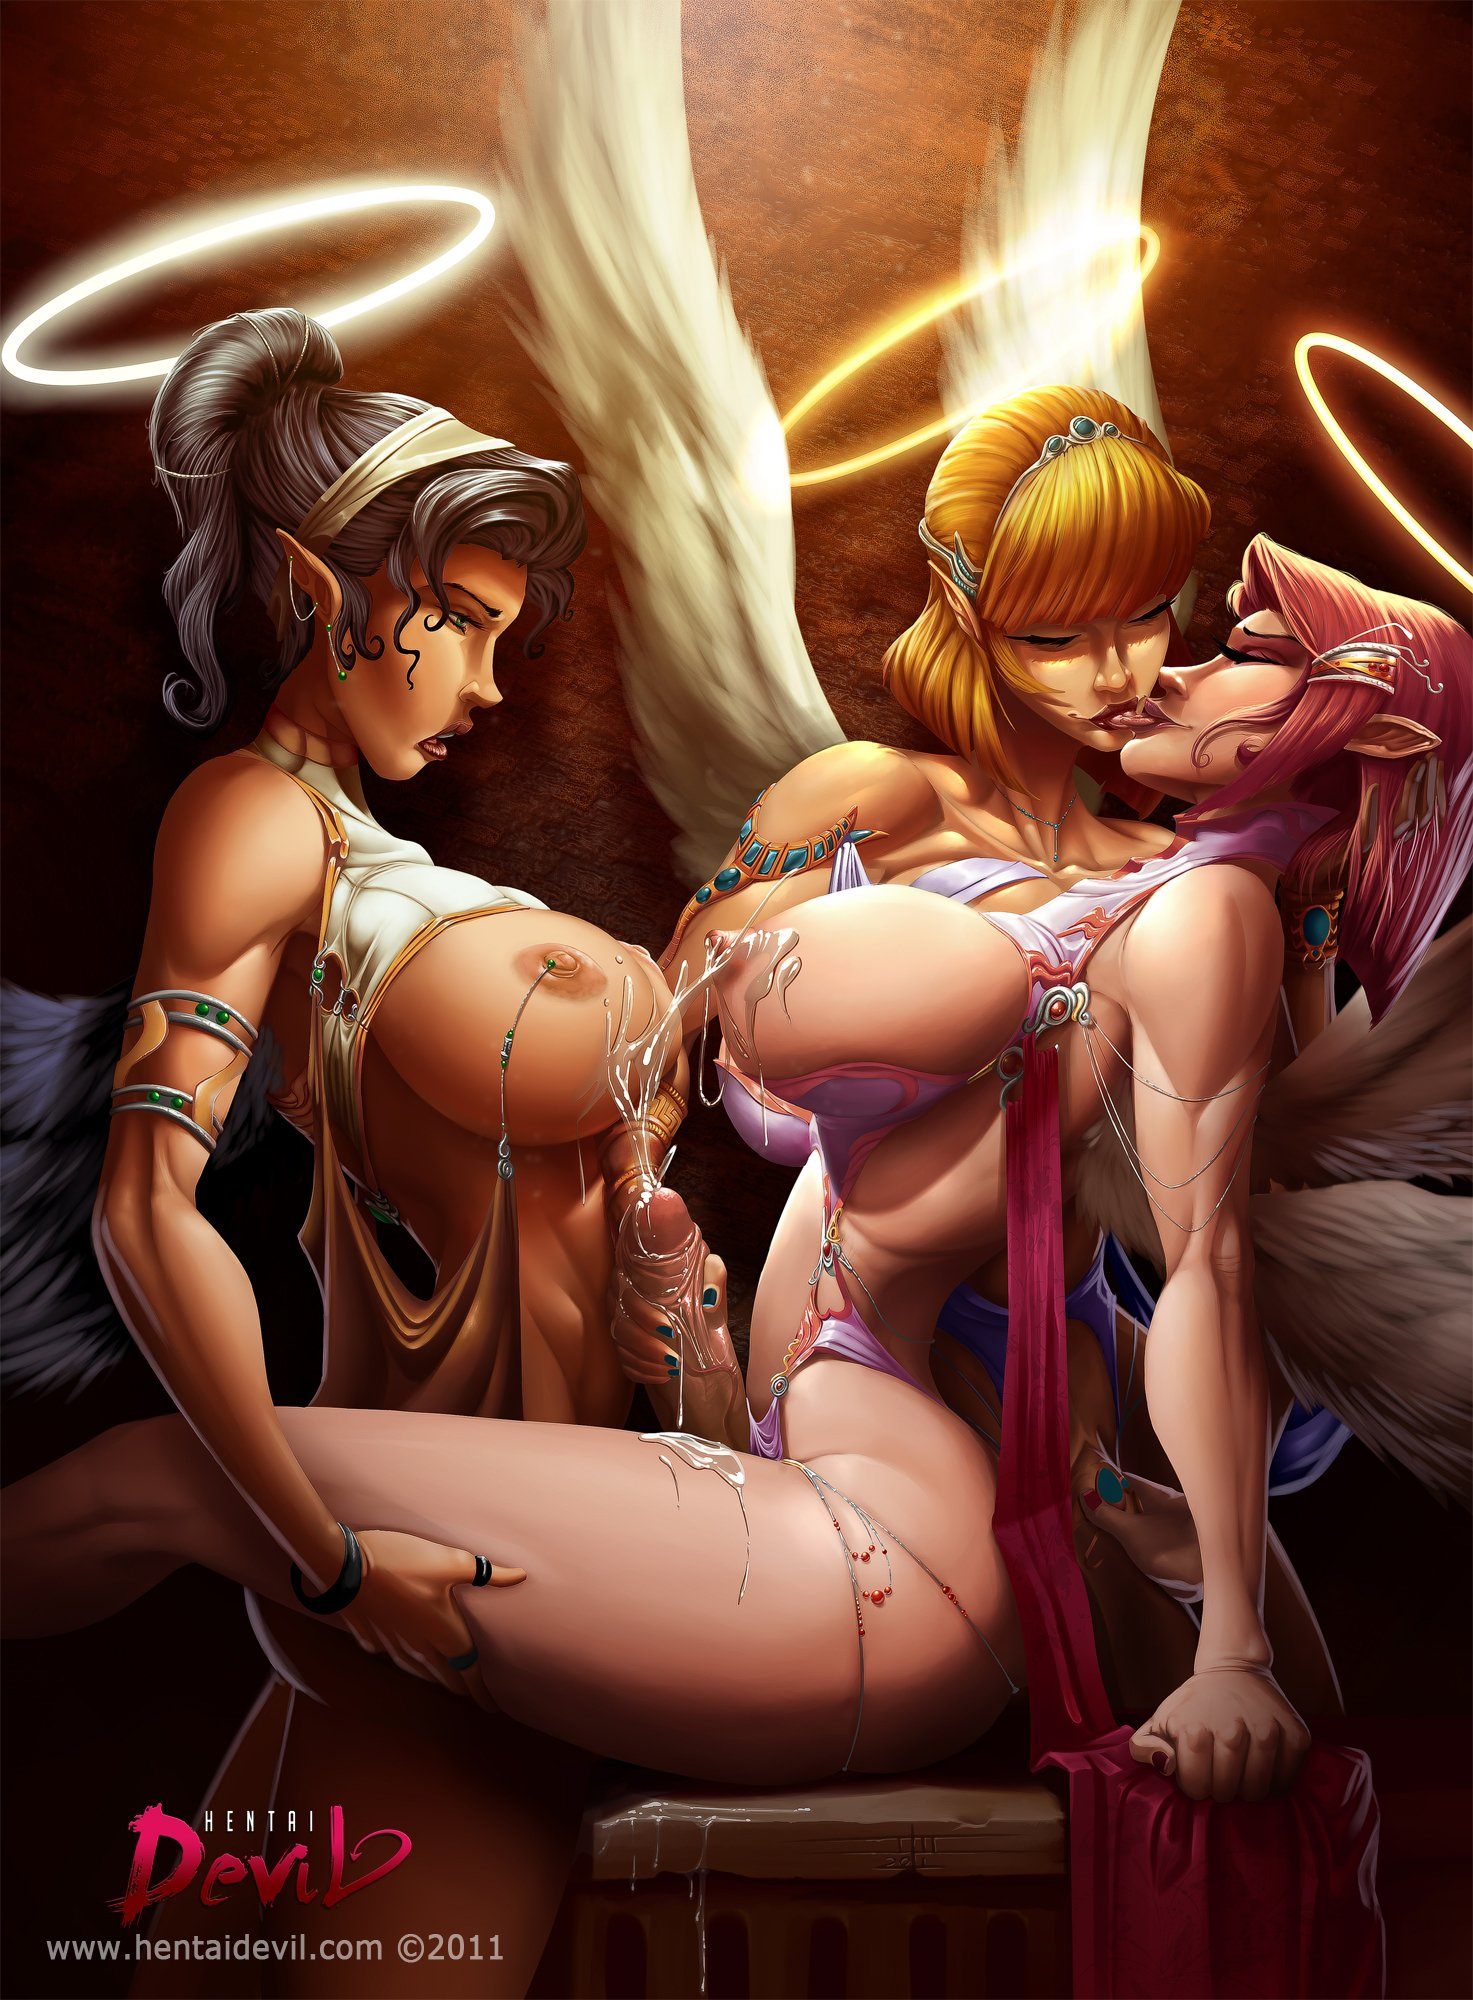 Hentai lesbian pic of devil angel nude streaming